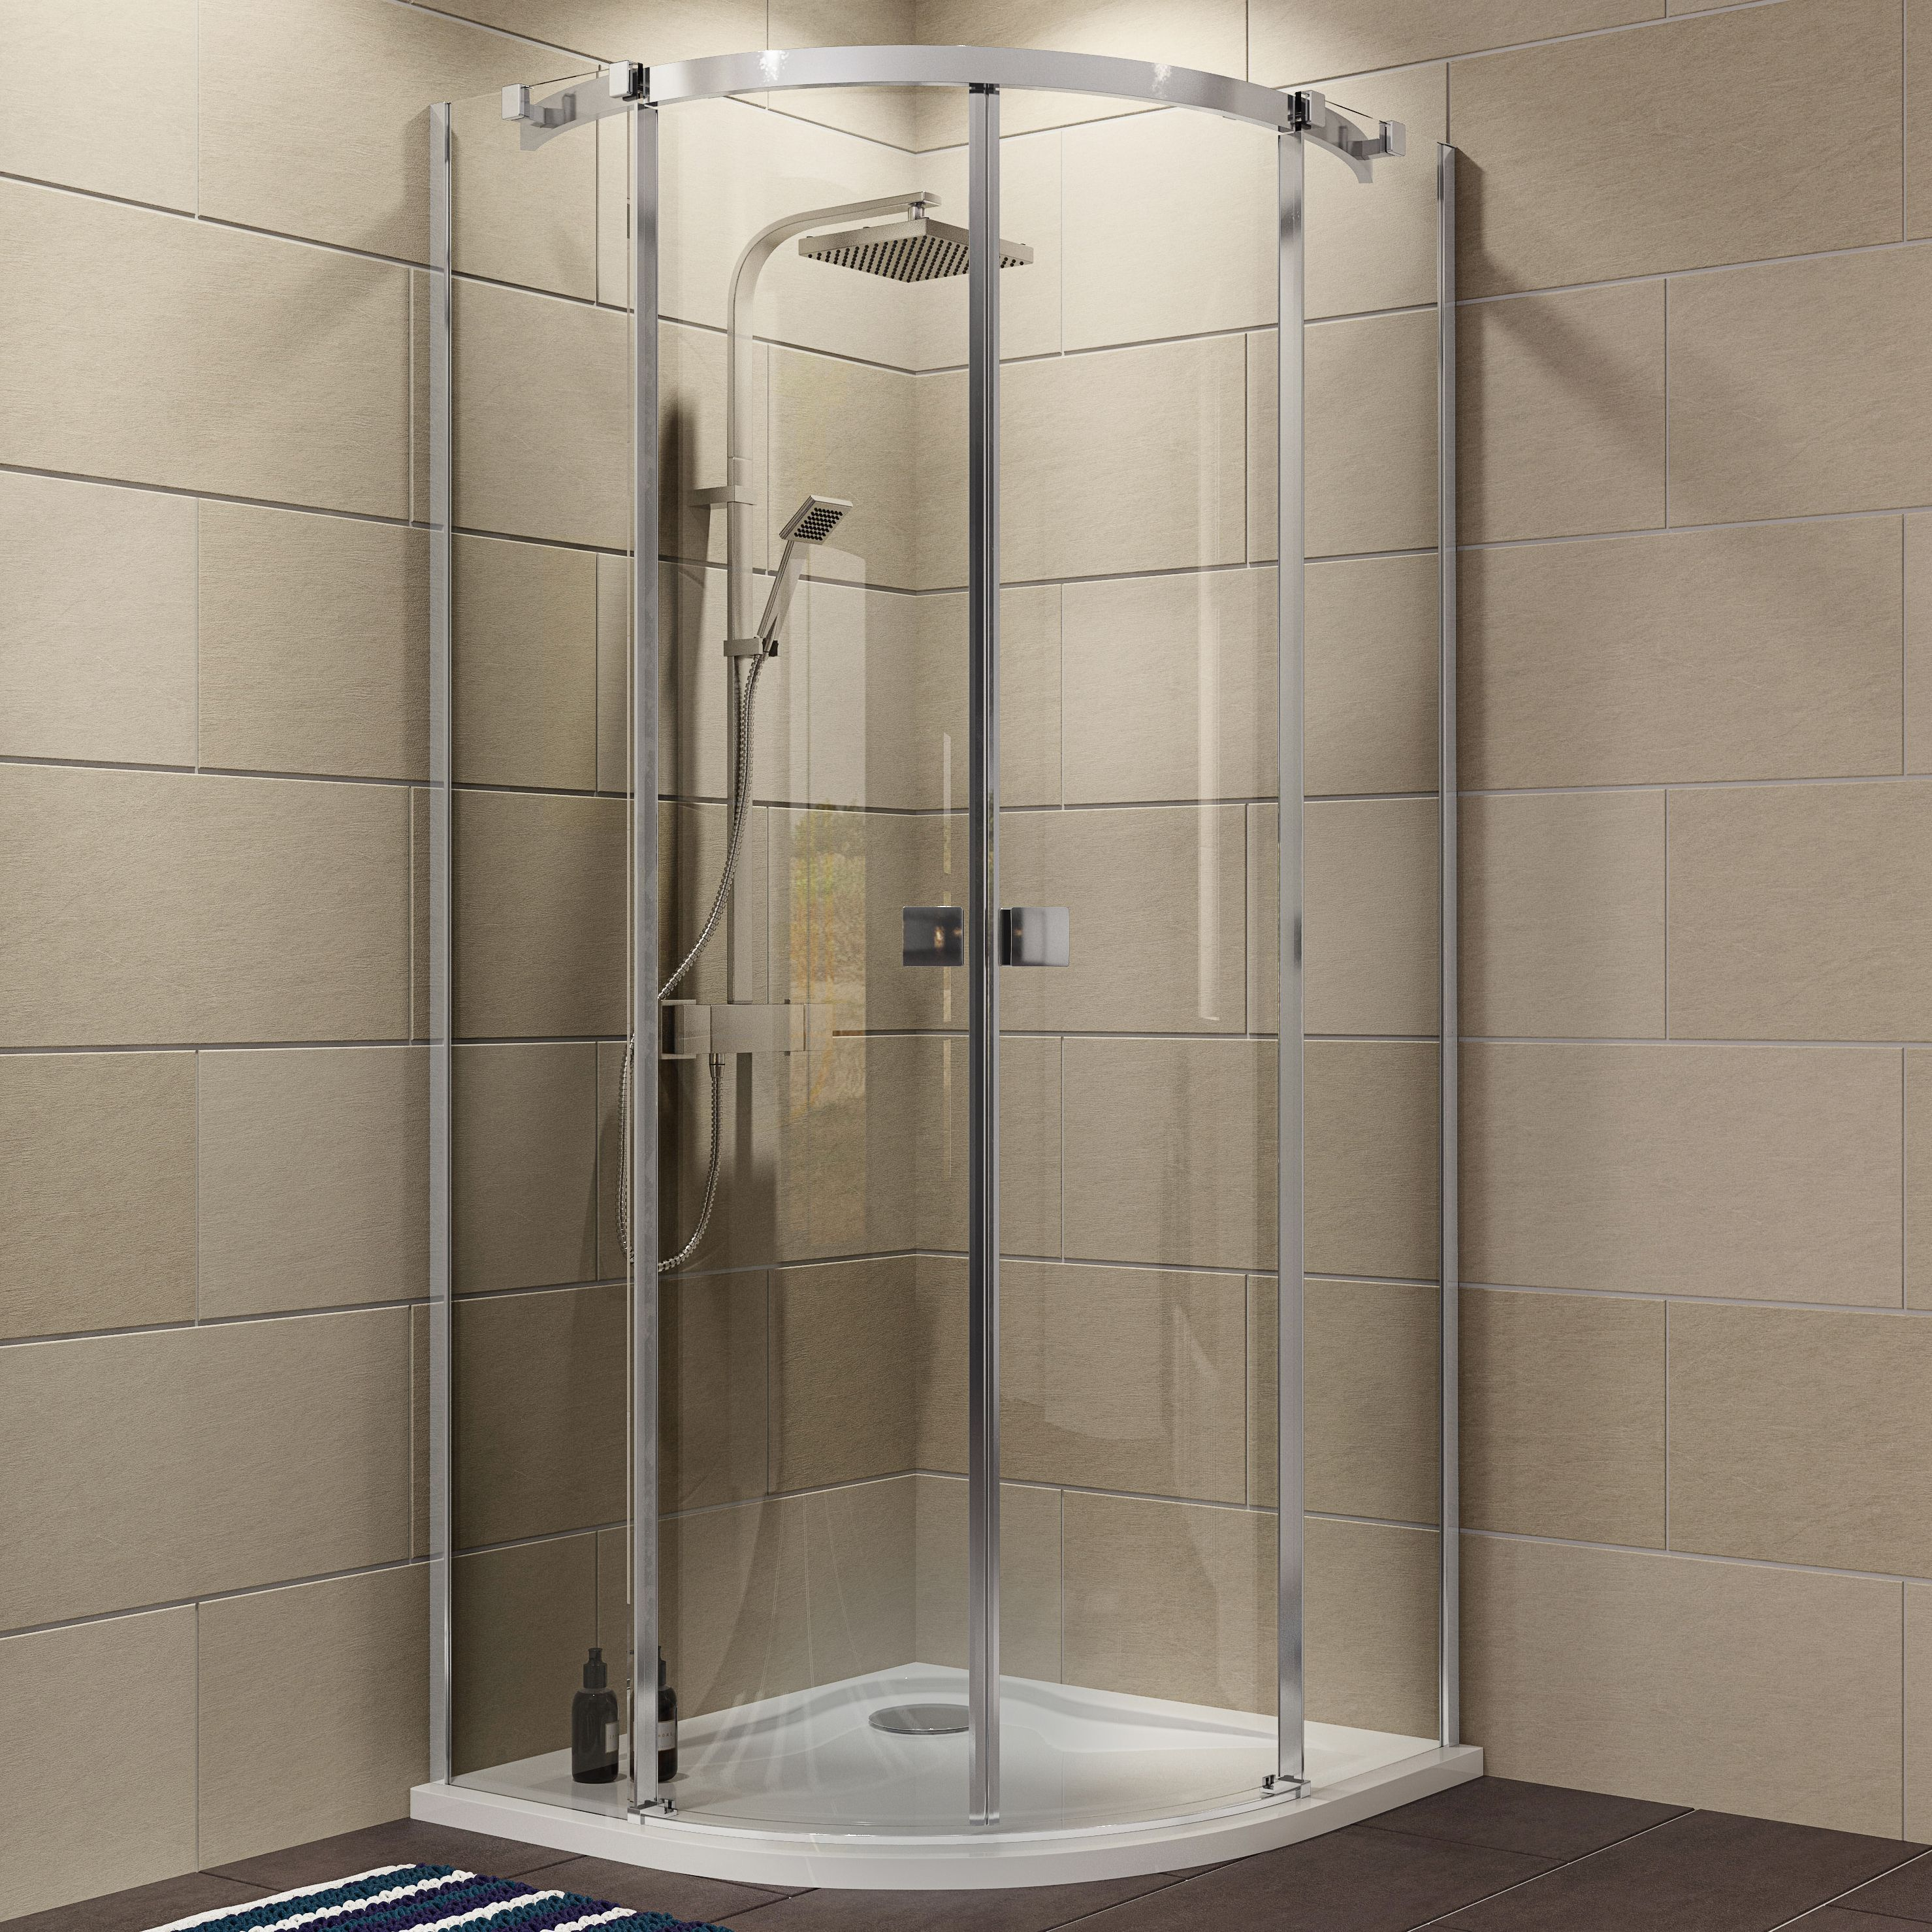 Cooke & Lewis Luxuriant Quadrant Shower Enclosure, Tray & Waste Pack With Double Sliding Doors (w)900mm (d)900mm